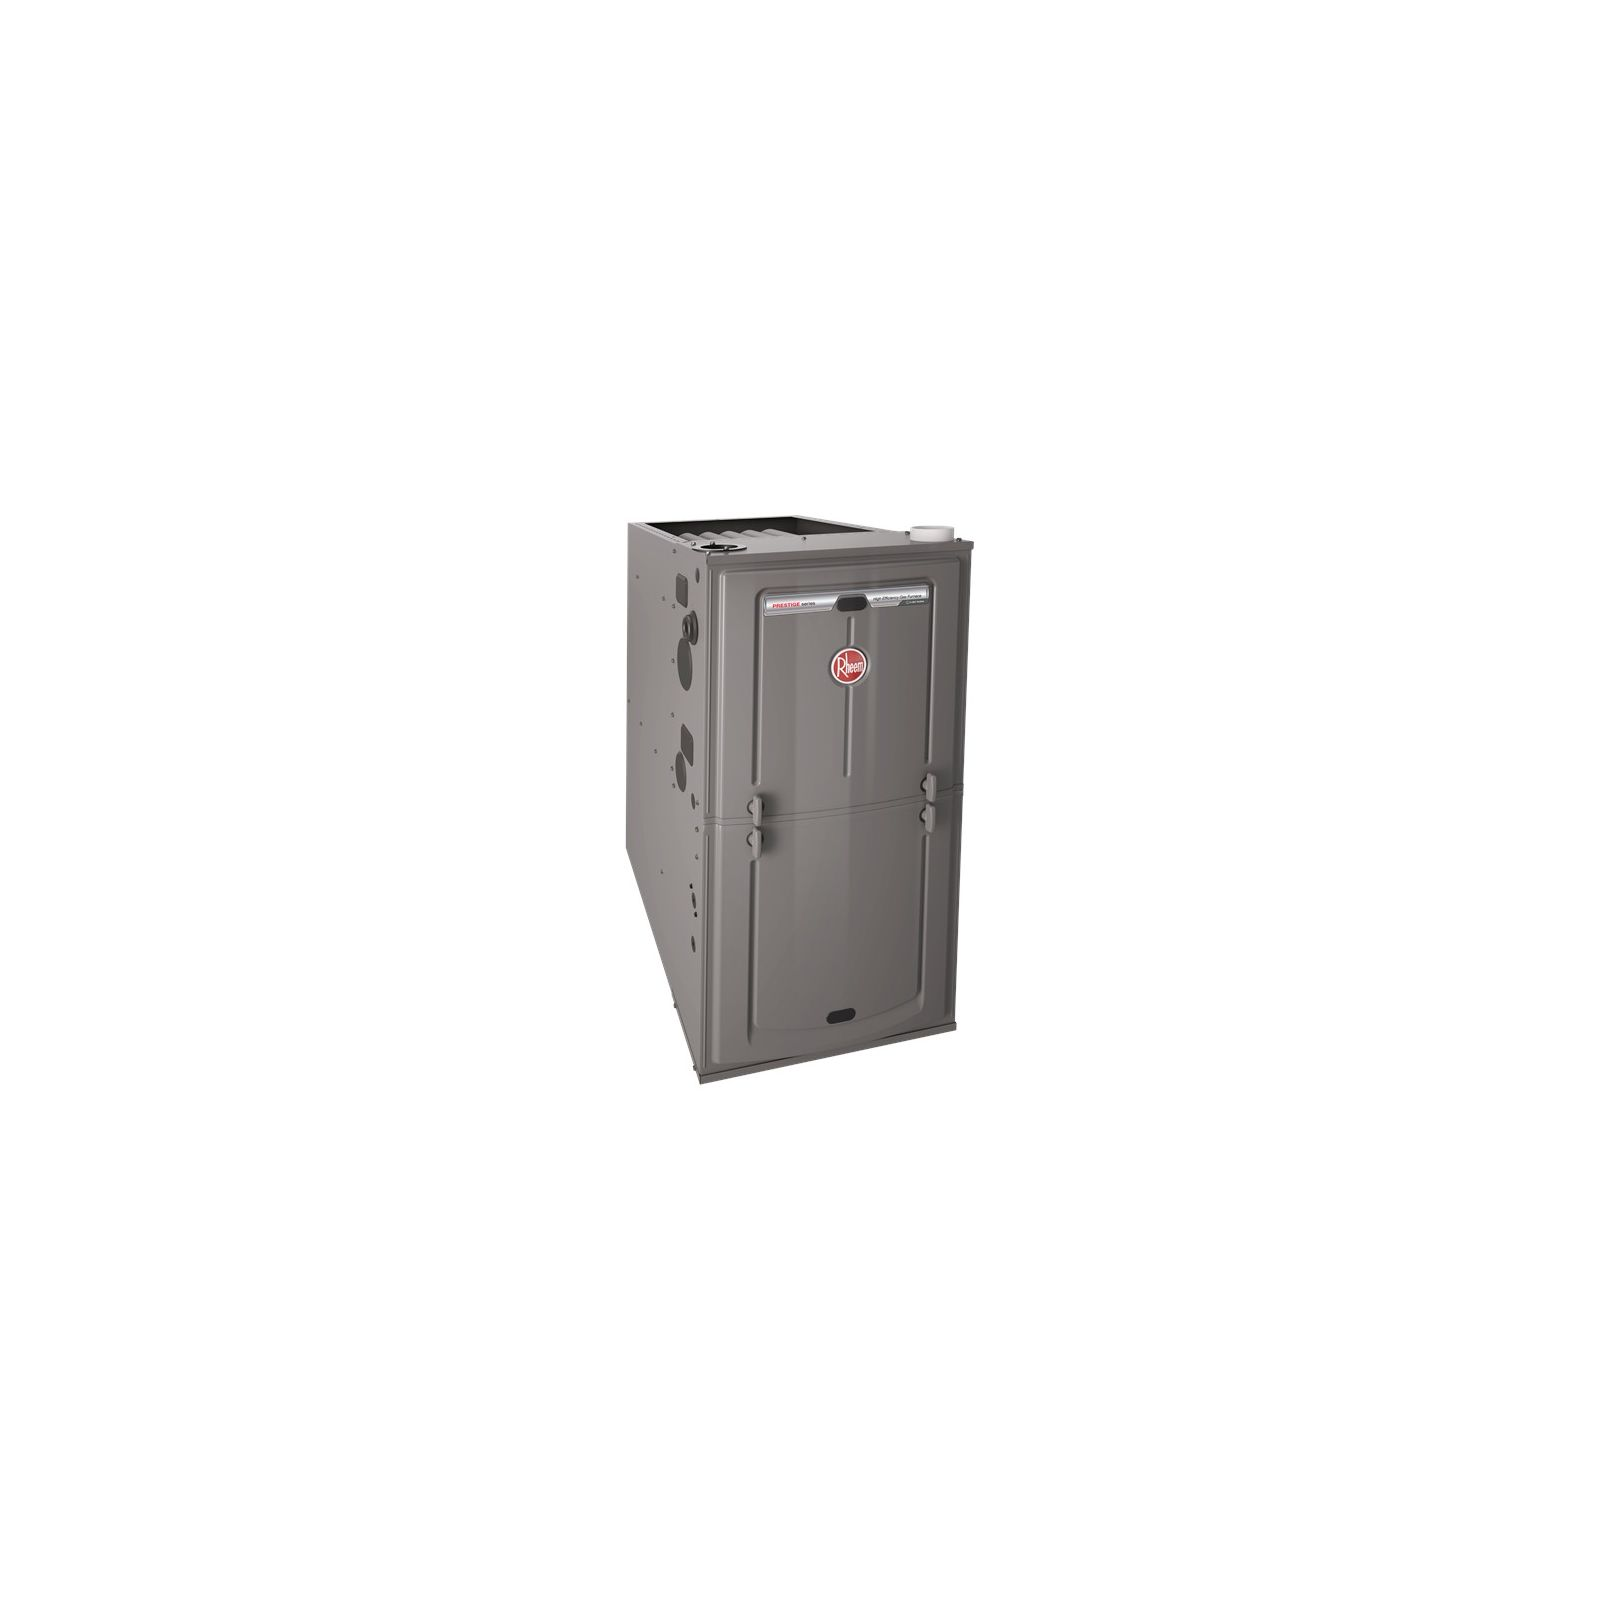 Rheem R96VA-1152524MSA - 96% AFUE, 115K BTU, 2 Stage, Multi-Position Gas Furnace with Variable Speed ECM Motor